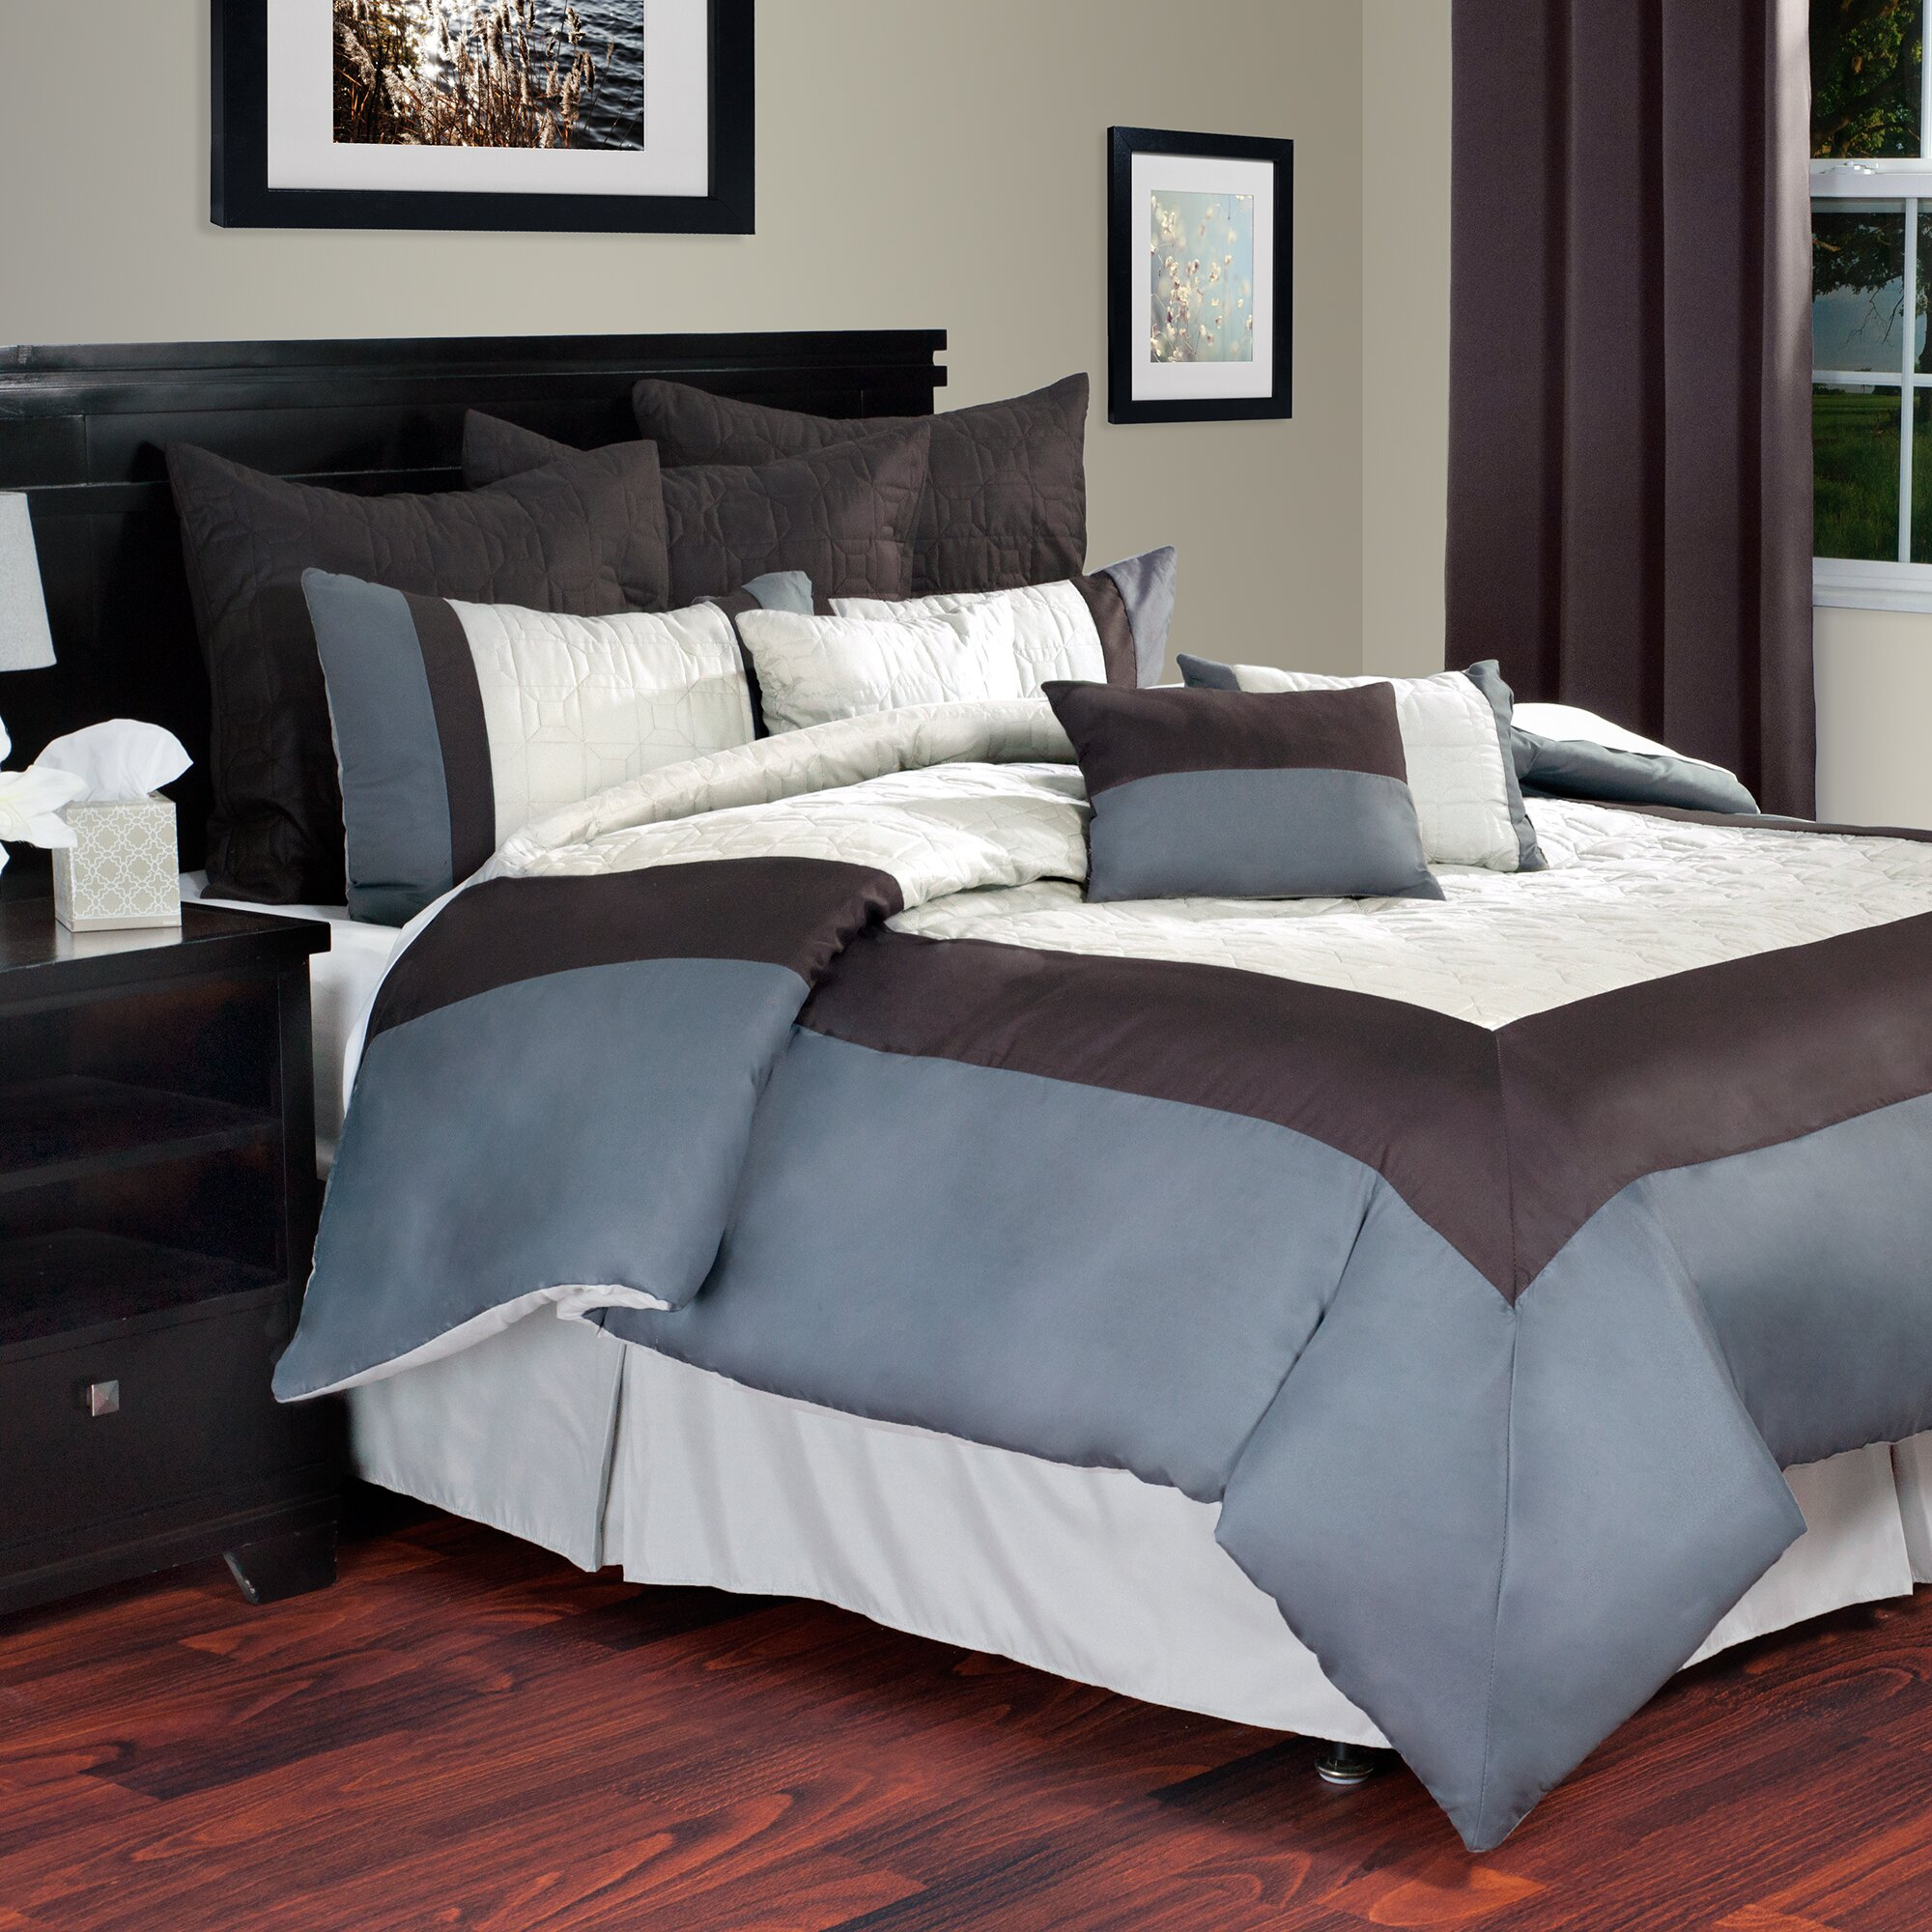 Reviews On Hotel Collection Bedding: Lavish Home Hotel Comforter Set & Reviews